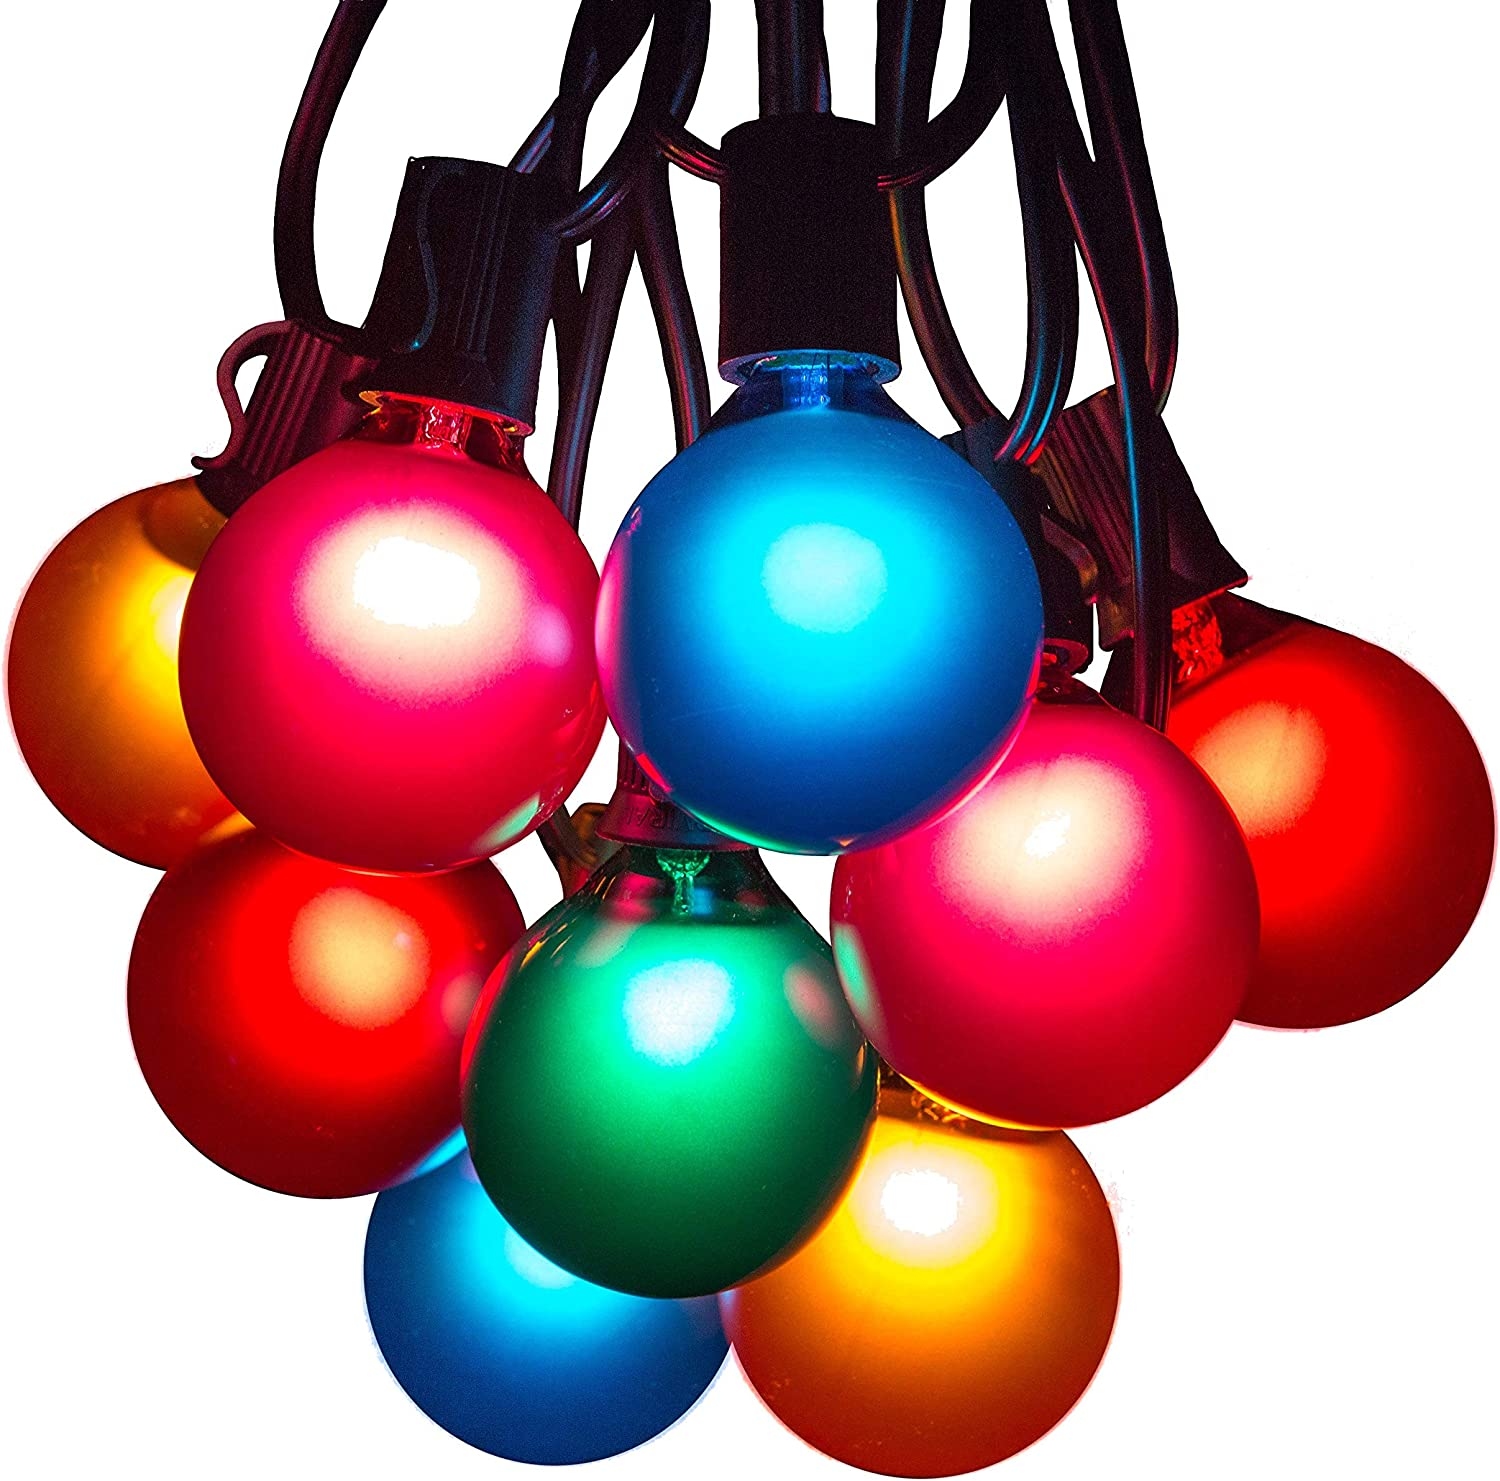 50 Foot Outdoor Colored String Lights - G50 Assorted Satin Pearl 2 Inch Globe Bulbs - Black Wire (+ 2 Free Spares) for Patio Backyard Deck Tree and Party Lighting